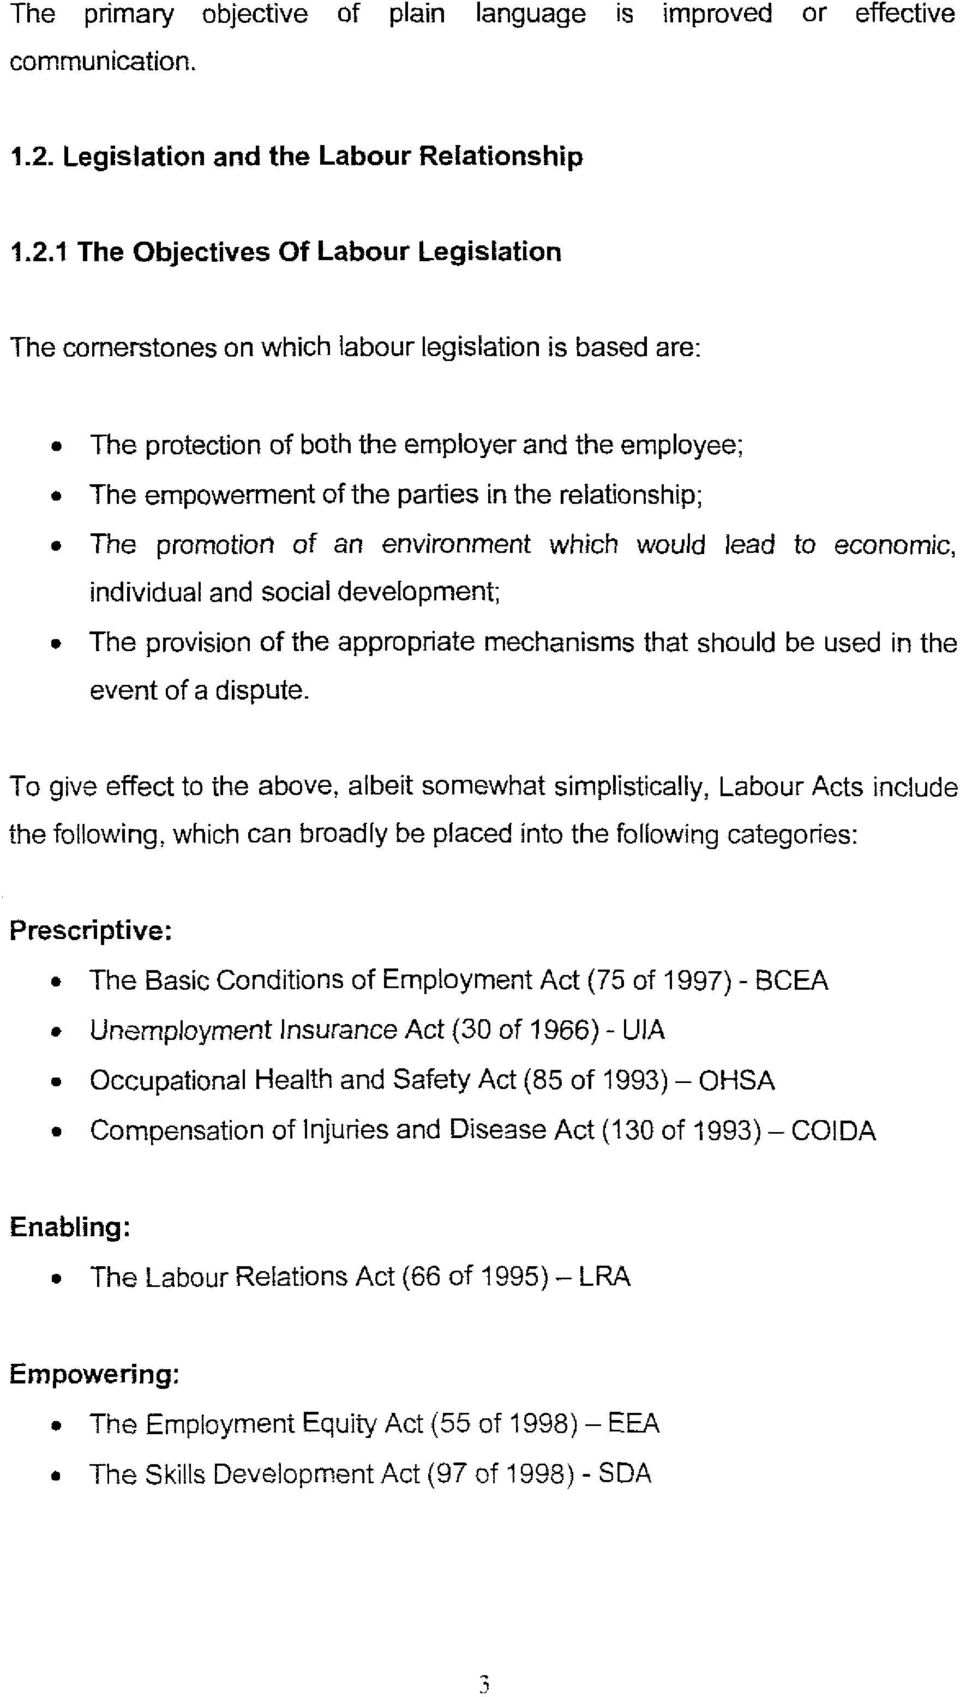 1 The Objectives Of Labour Legislation The comerstones on which labour legislation is based are: The protection of both the employer and the employee; The empowerment of the parties in the